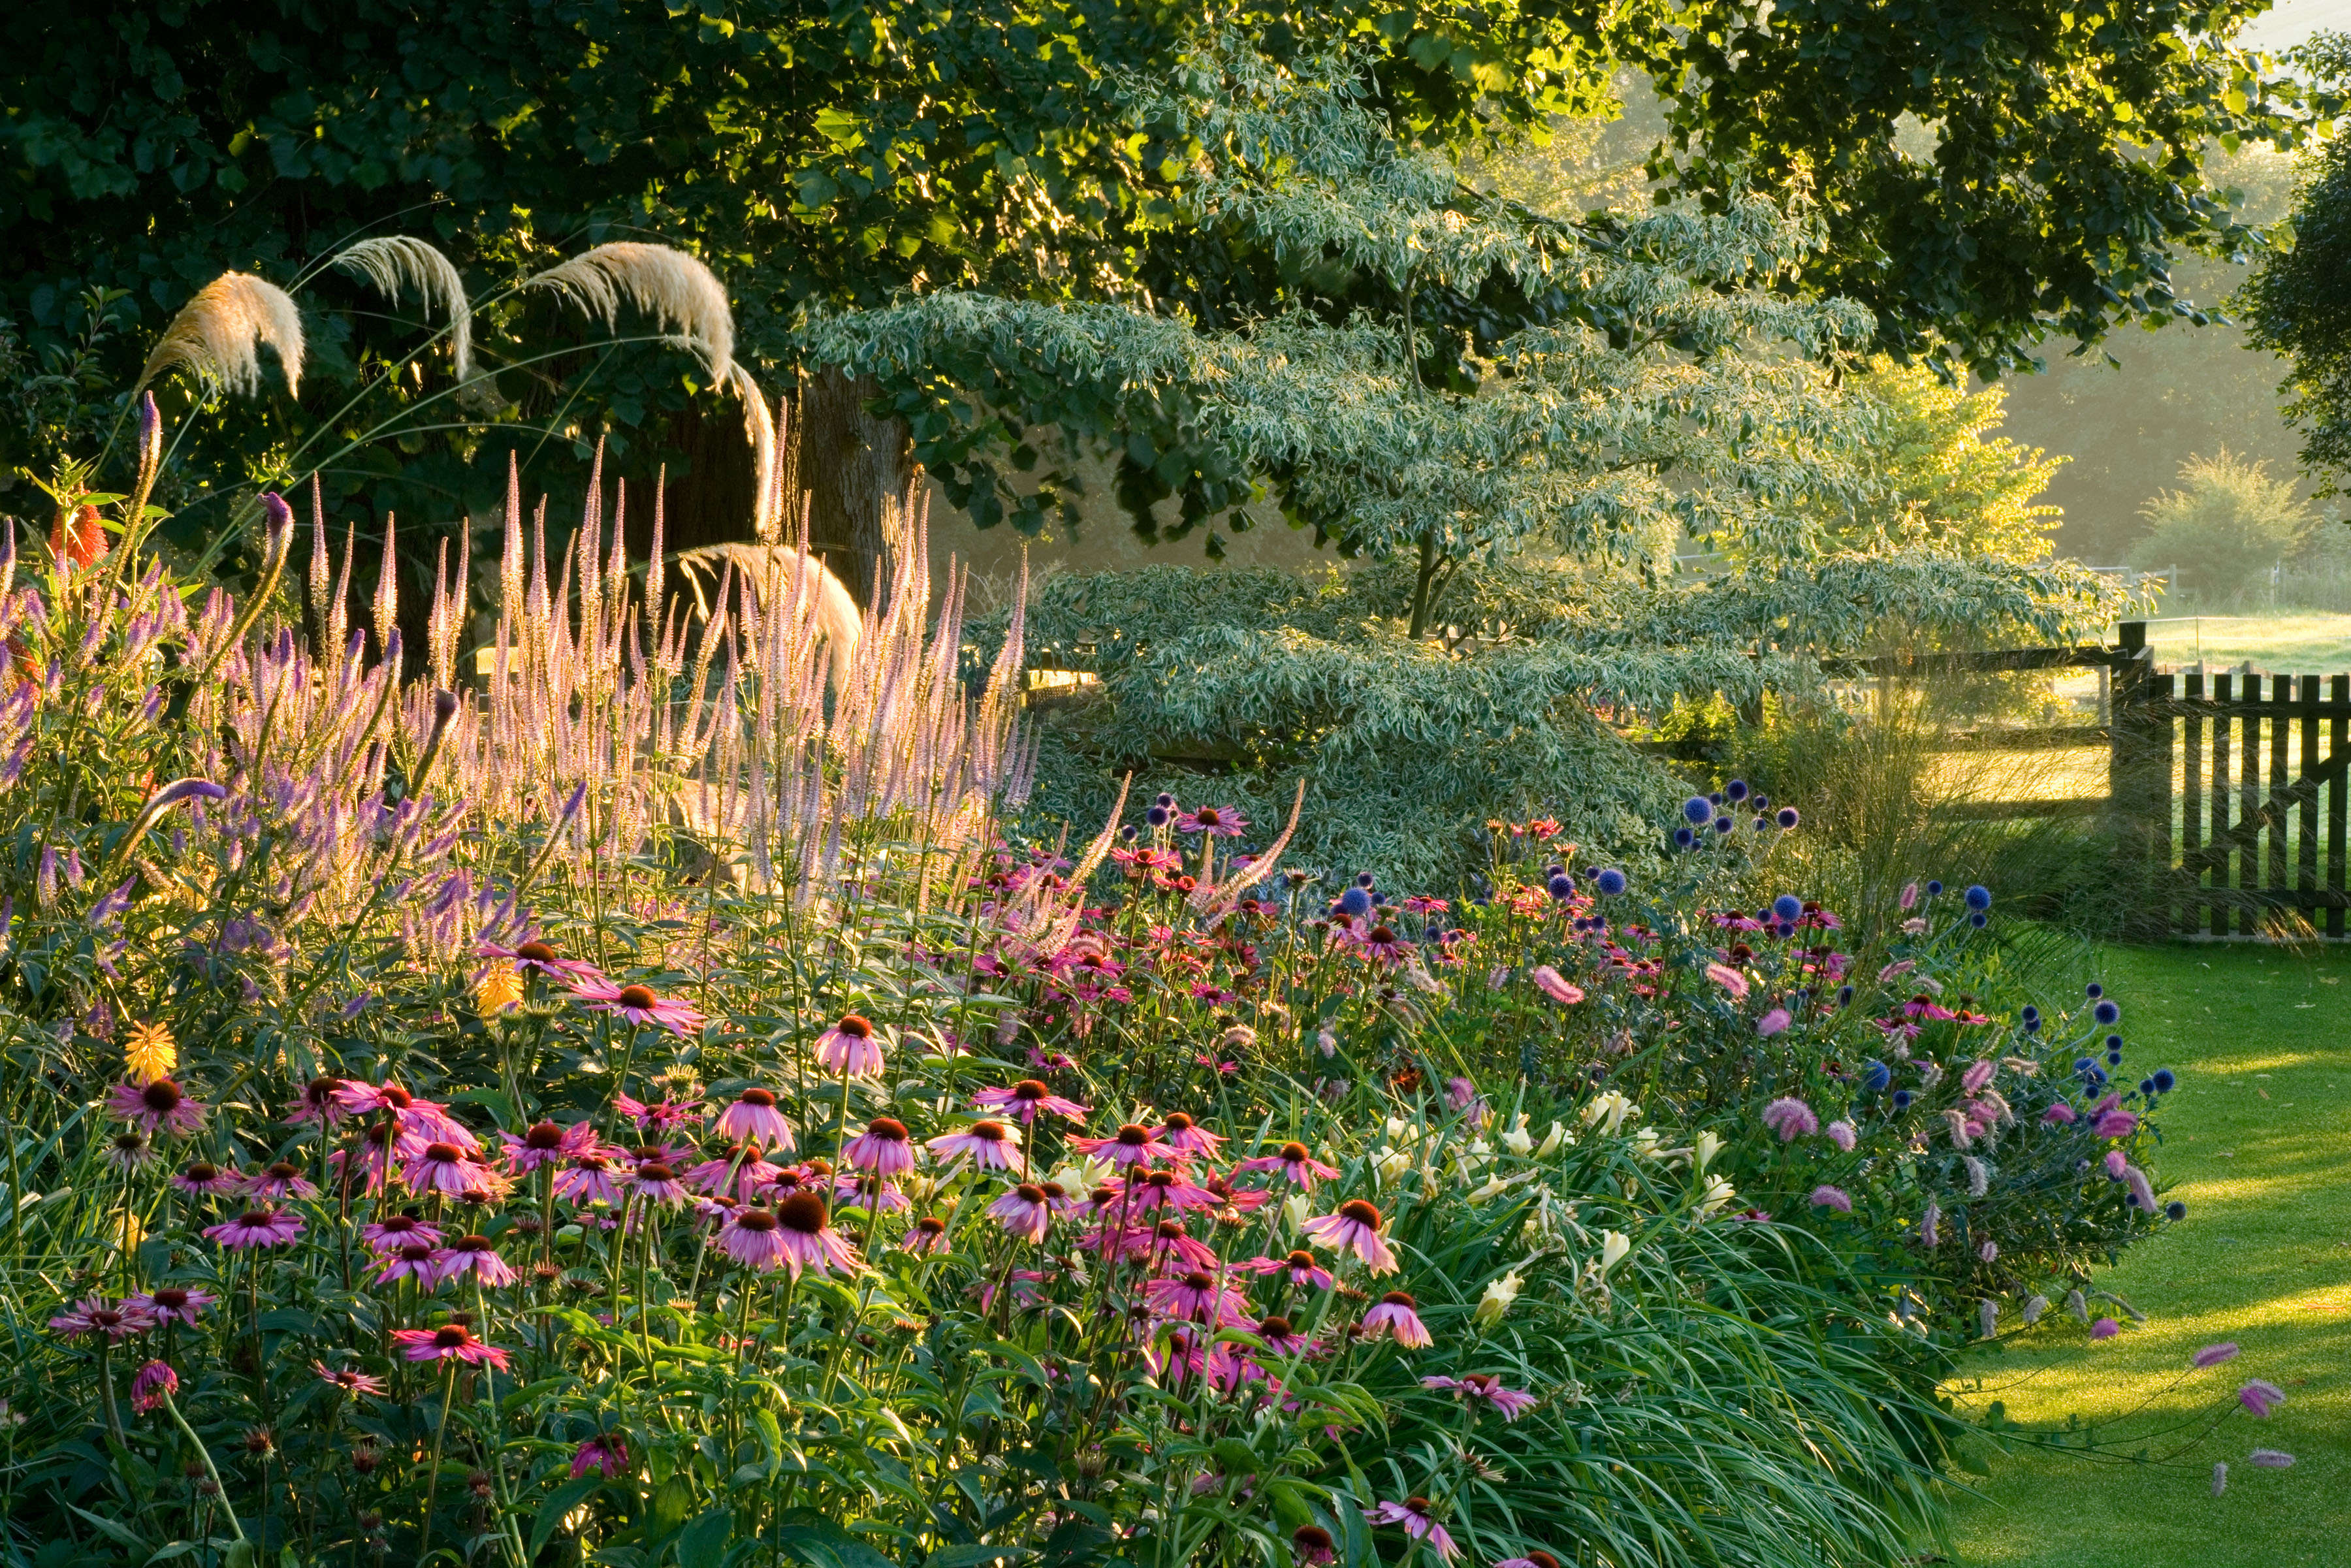 Expert Advice 9 Tips To Take Better Pictures From Garden